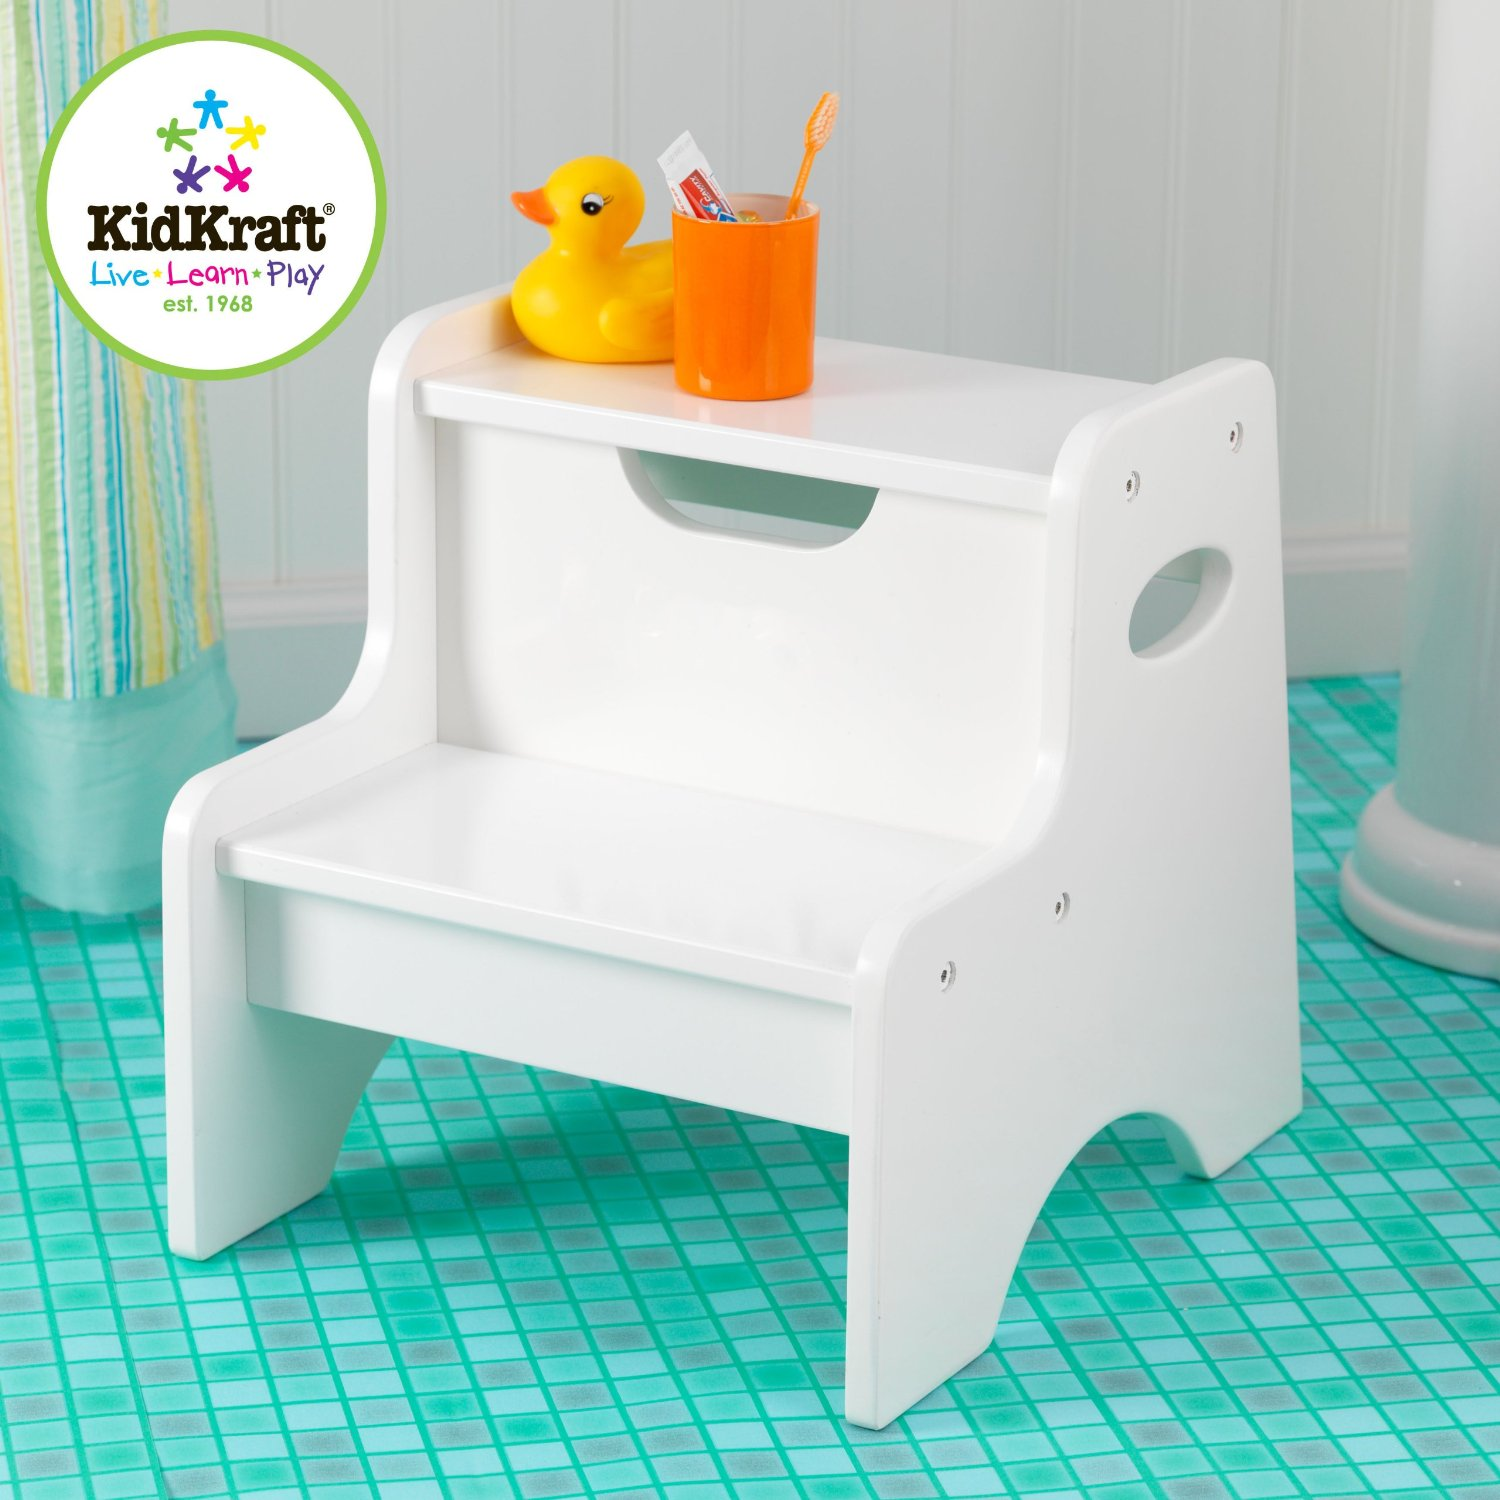 2 Step Stool For Child Thesteppingstool Com